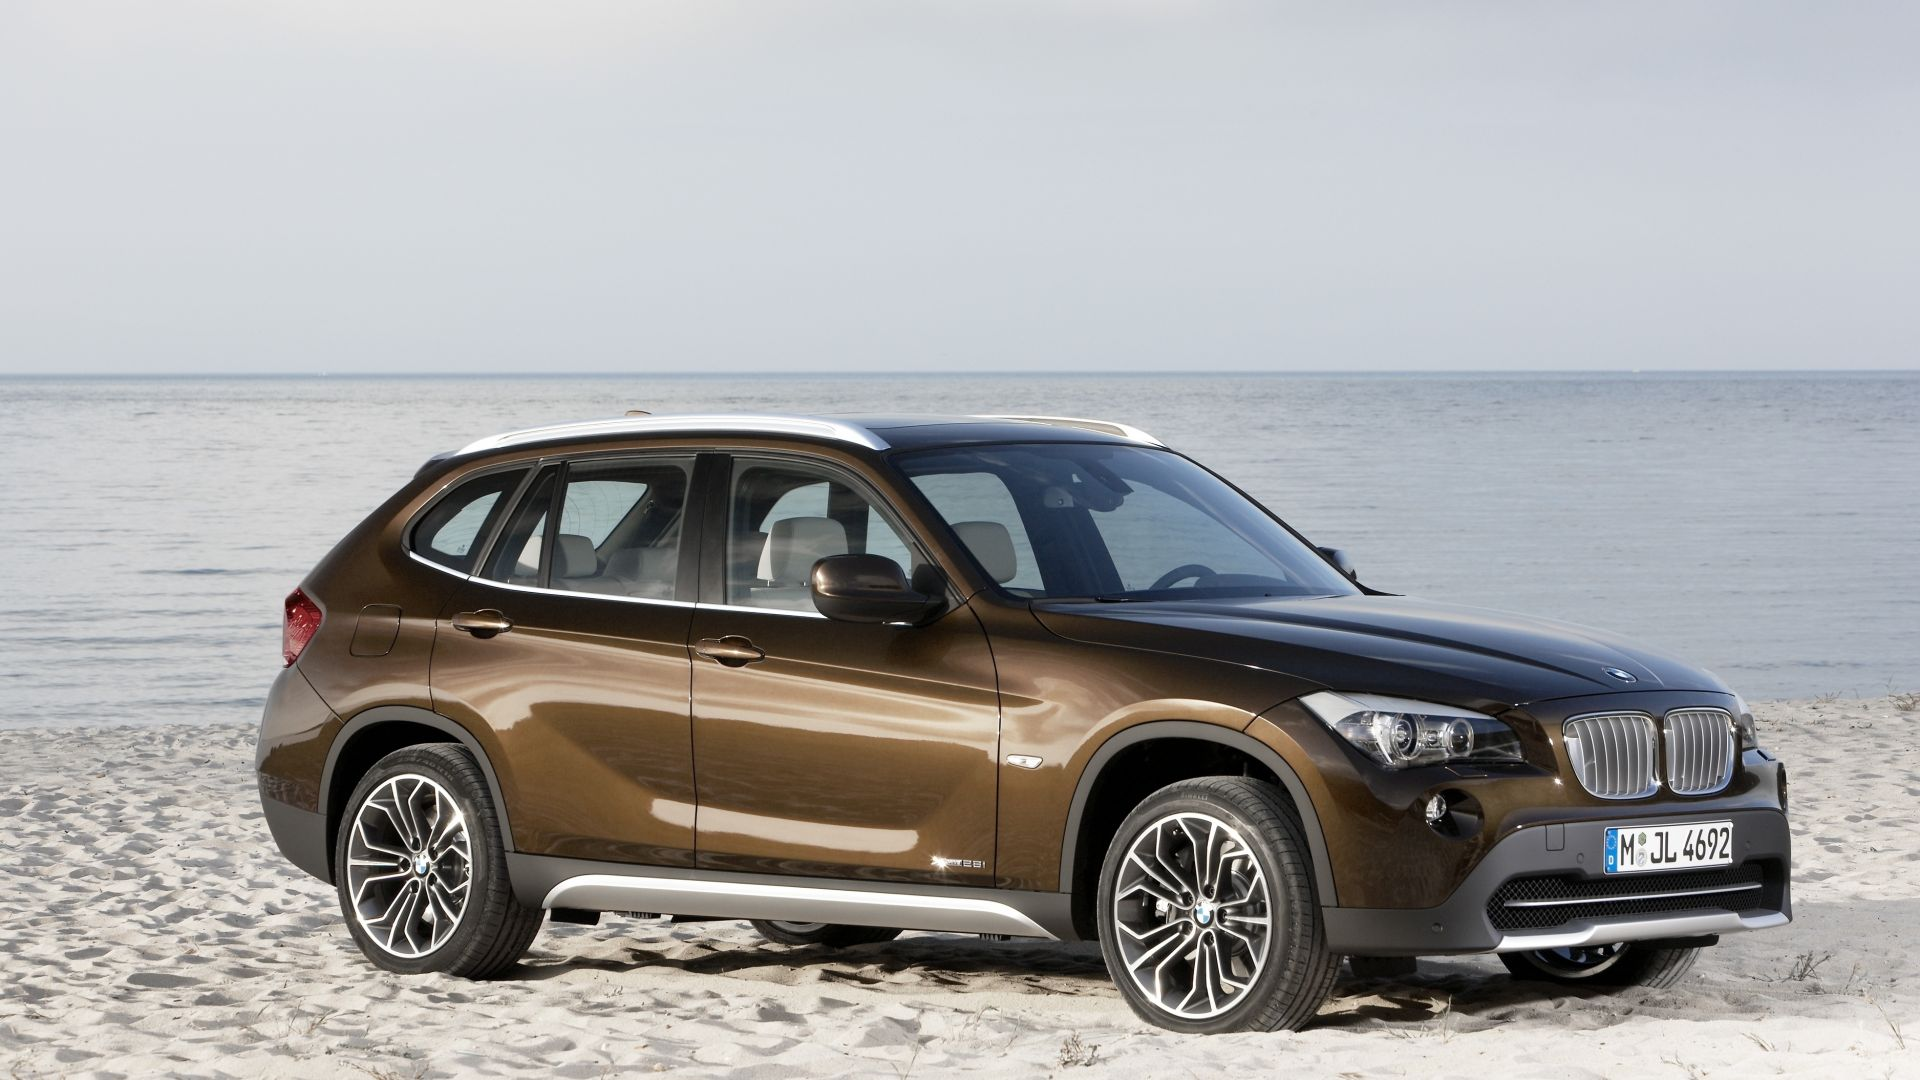 wallpaper bmw x1 crossover luxury cars suv xdrive. Black Bedroom Furniture Sets. Home Design Ideas